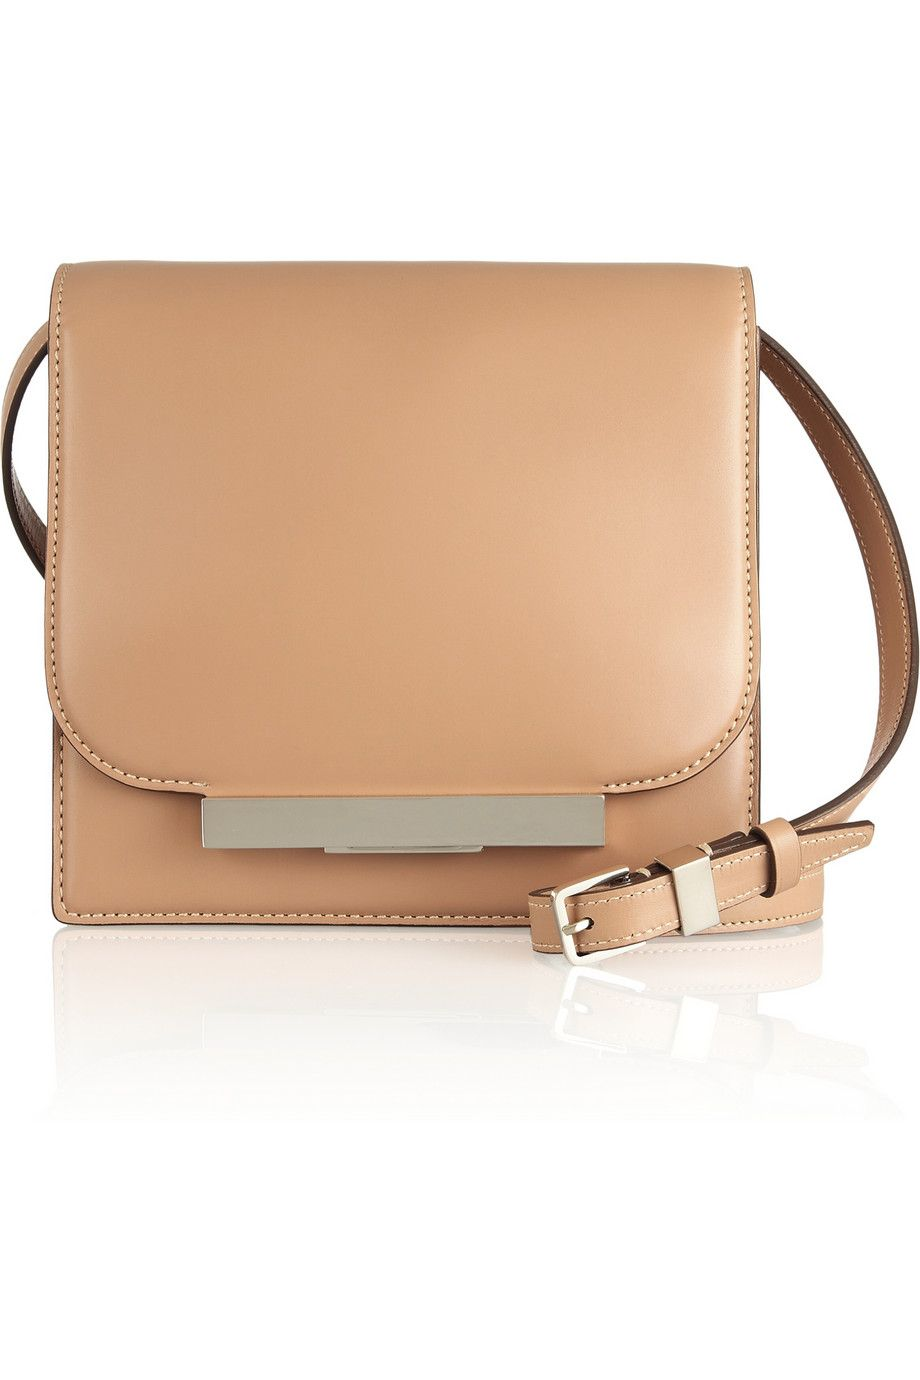 The Row - Soft Classic leather shoulder bag